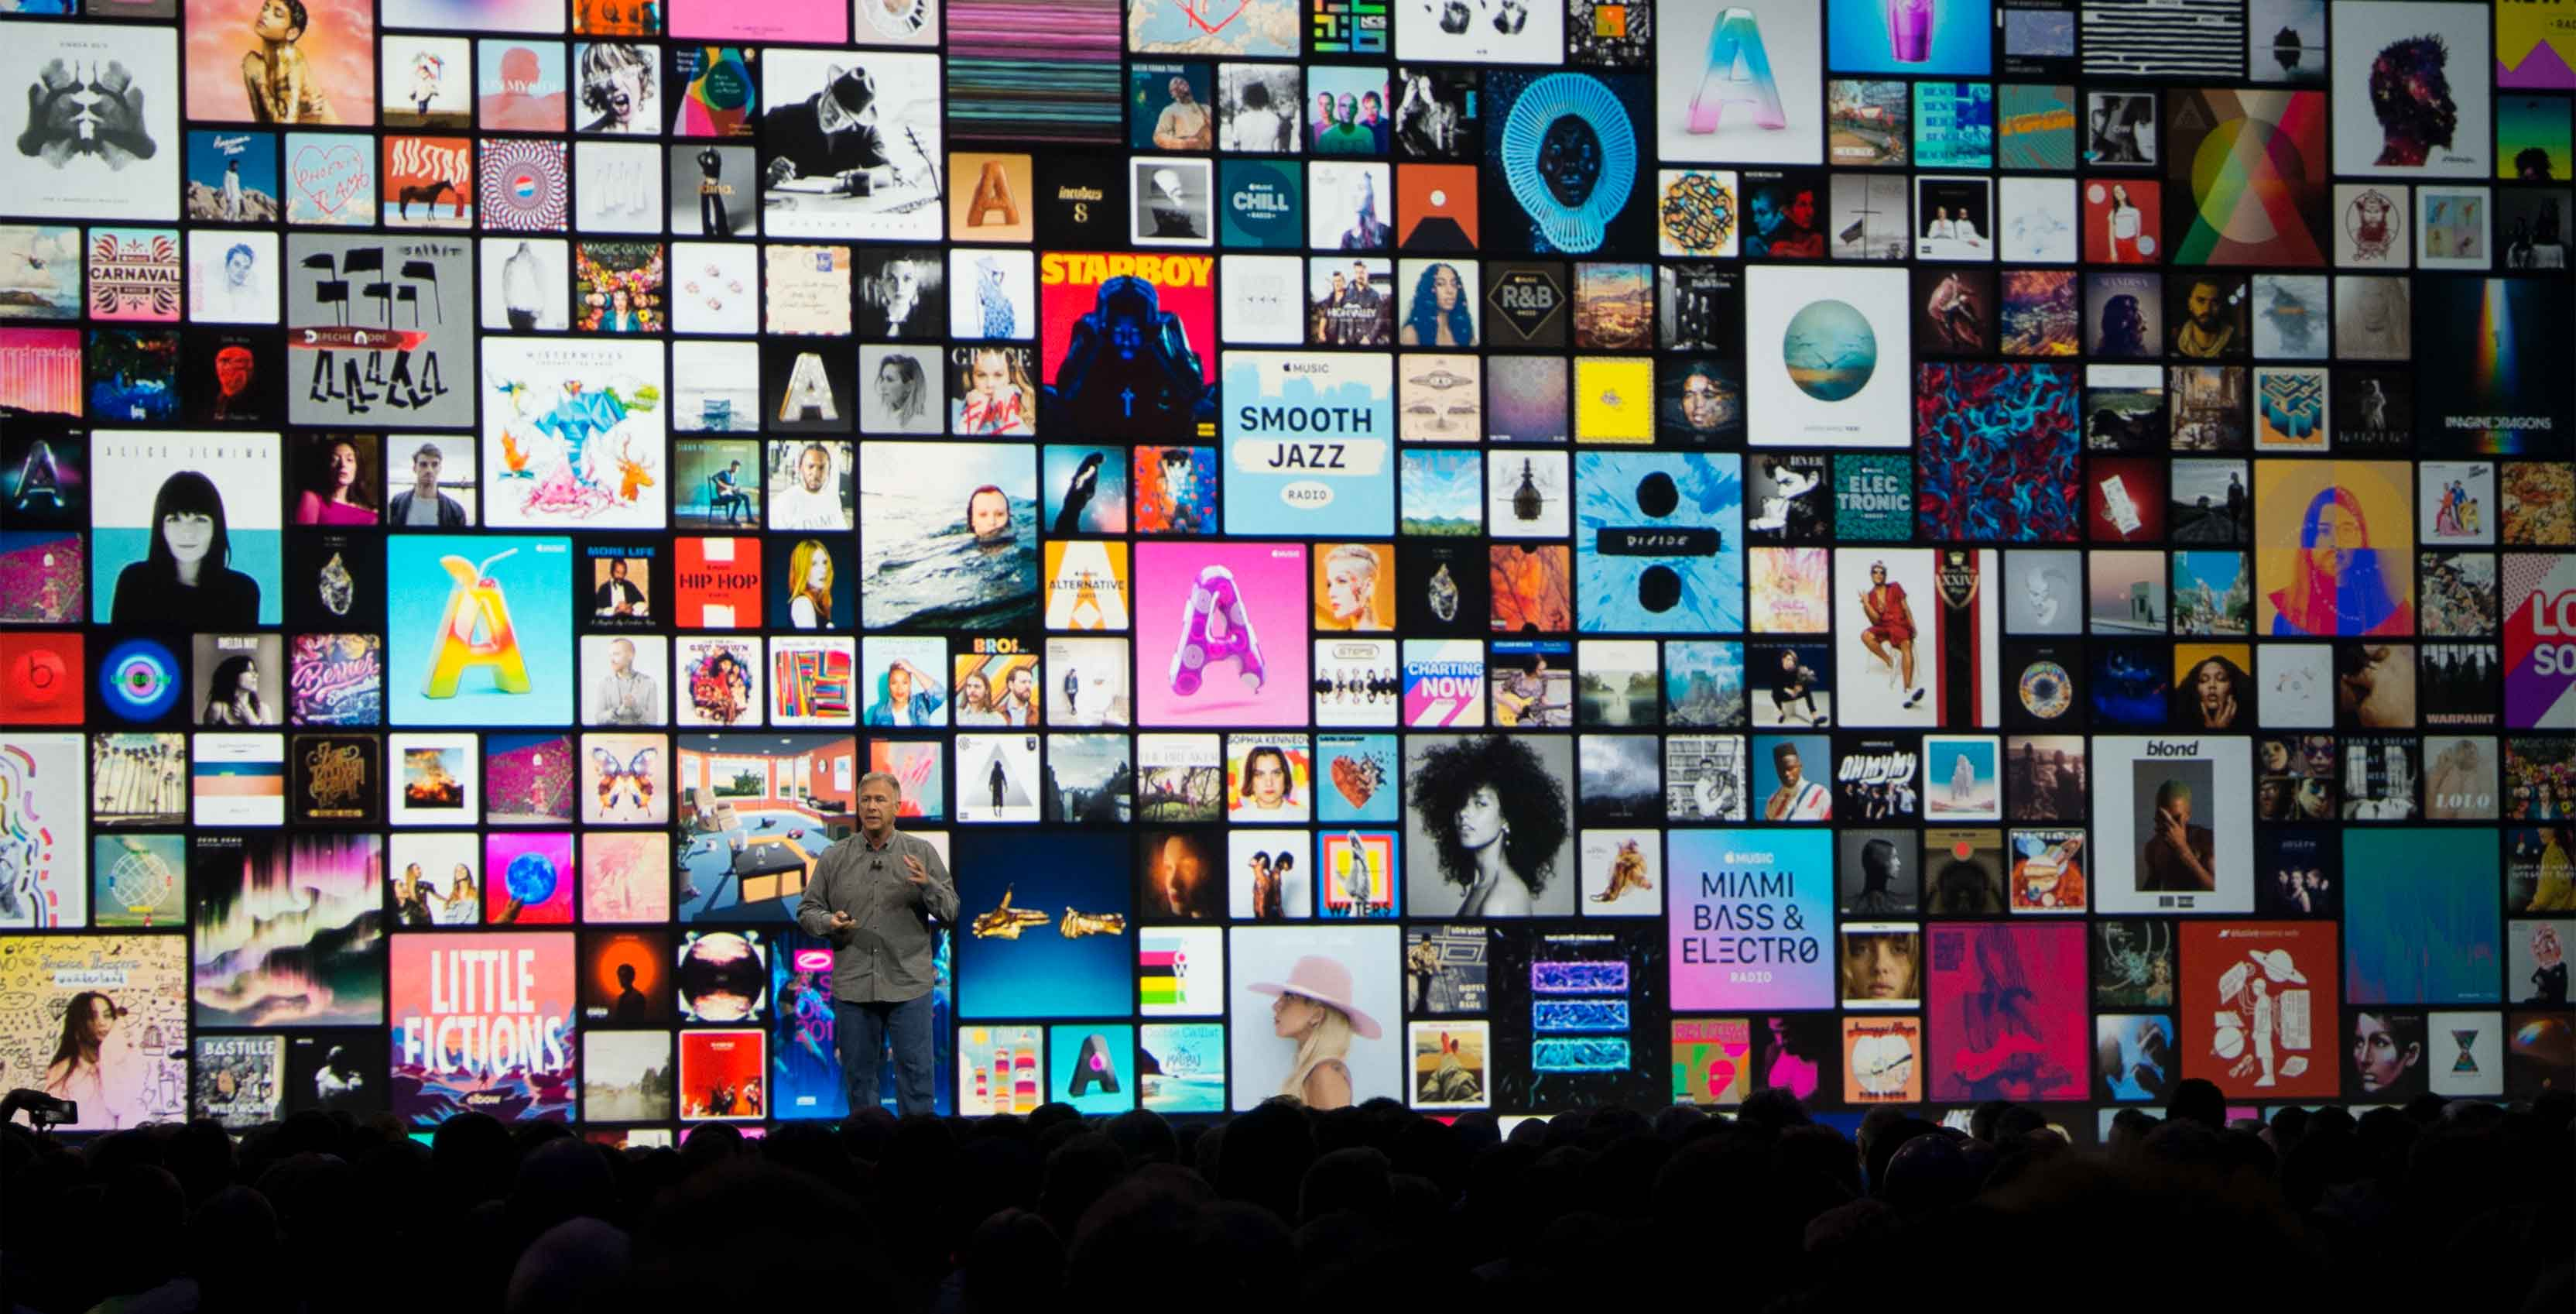 What we expect to see at WWDC 2018